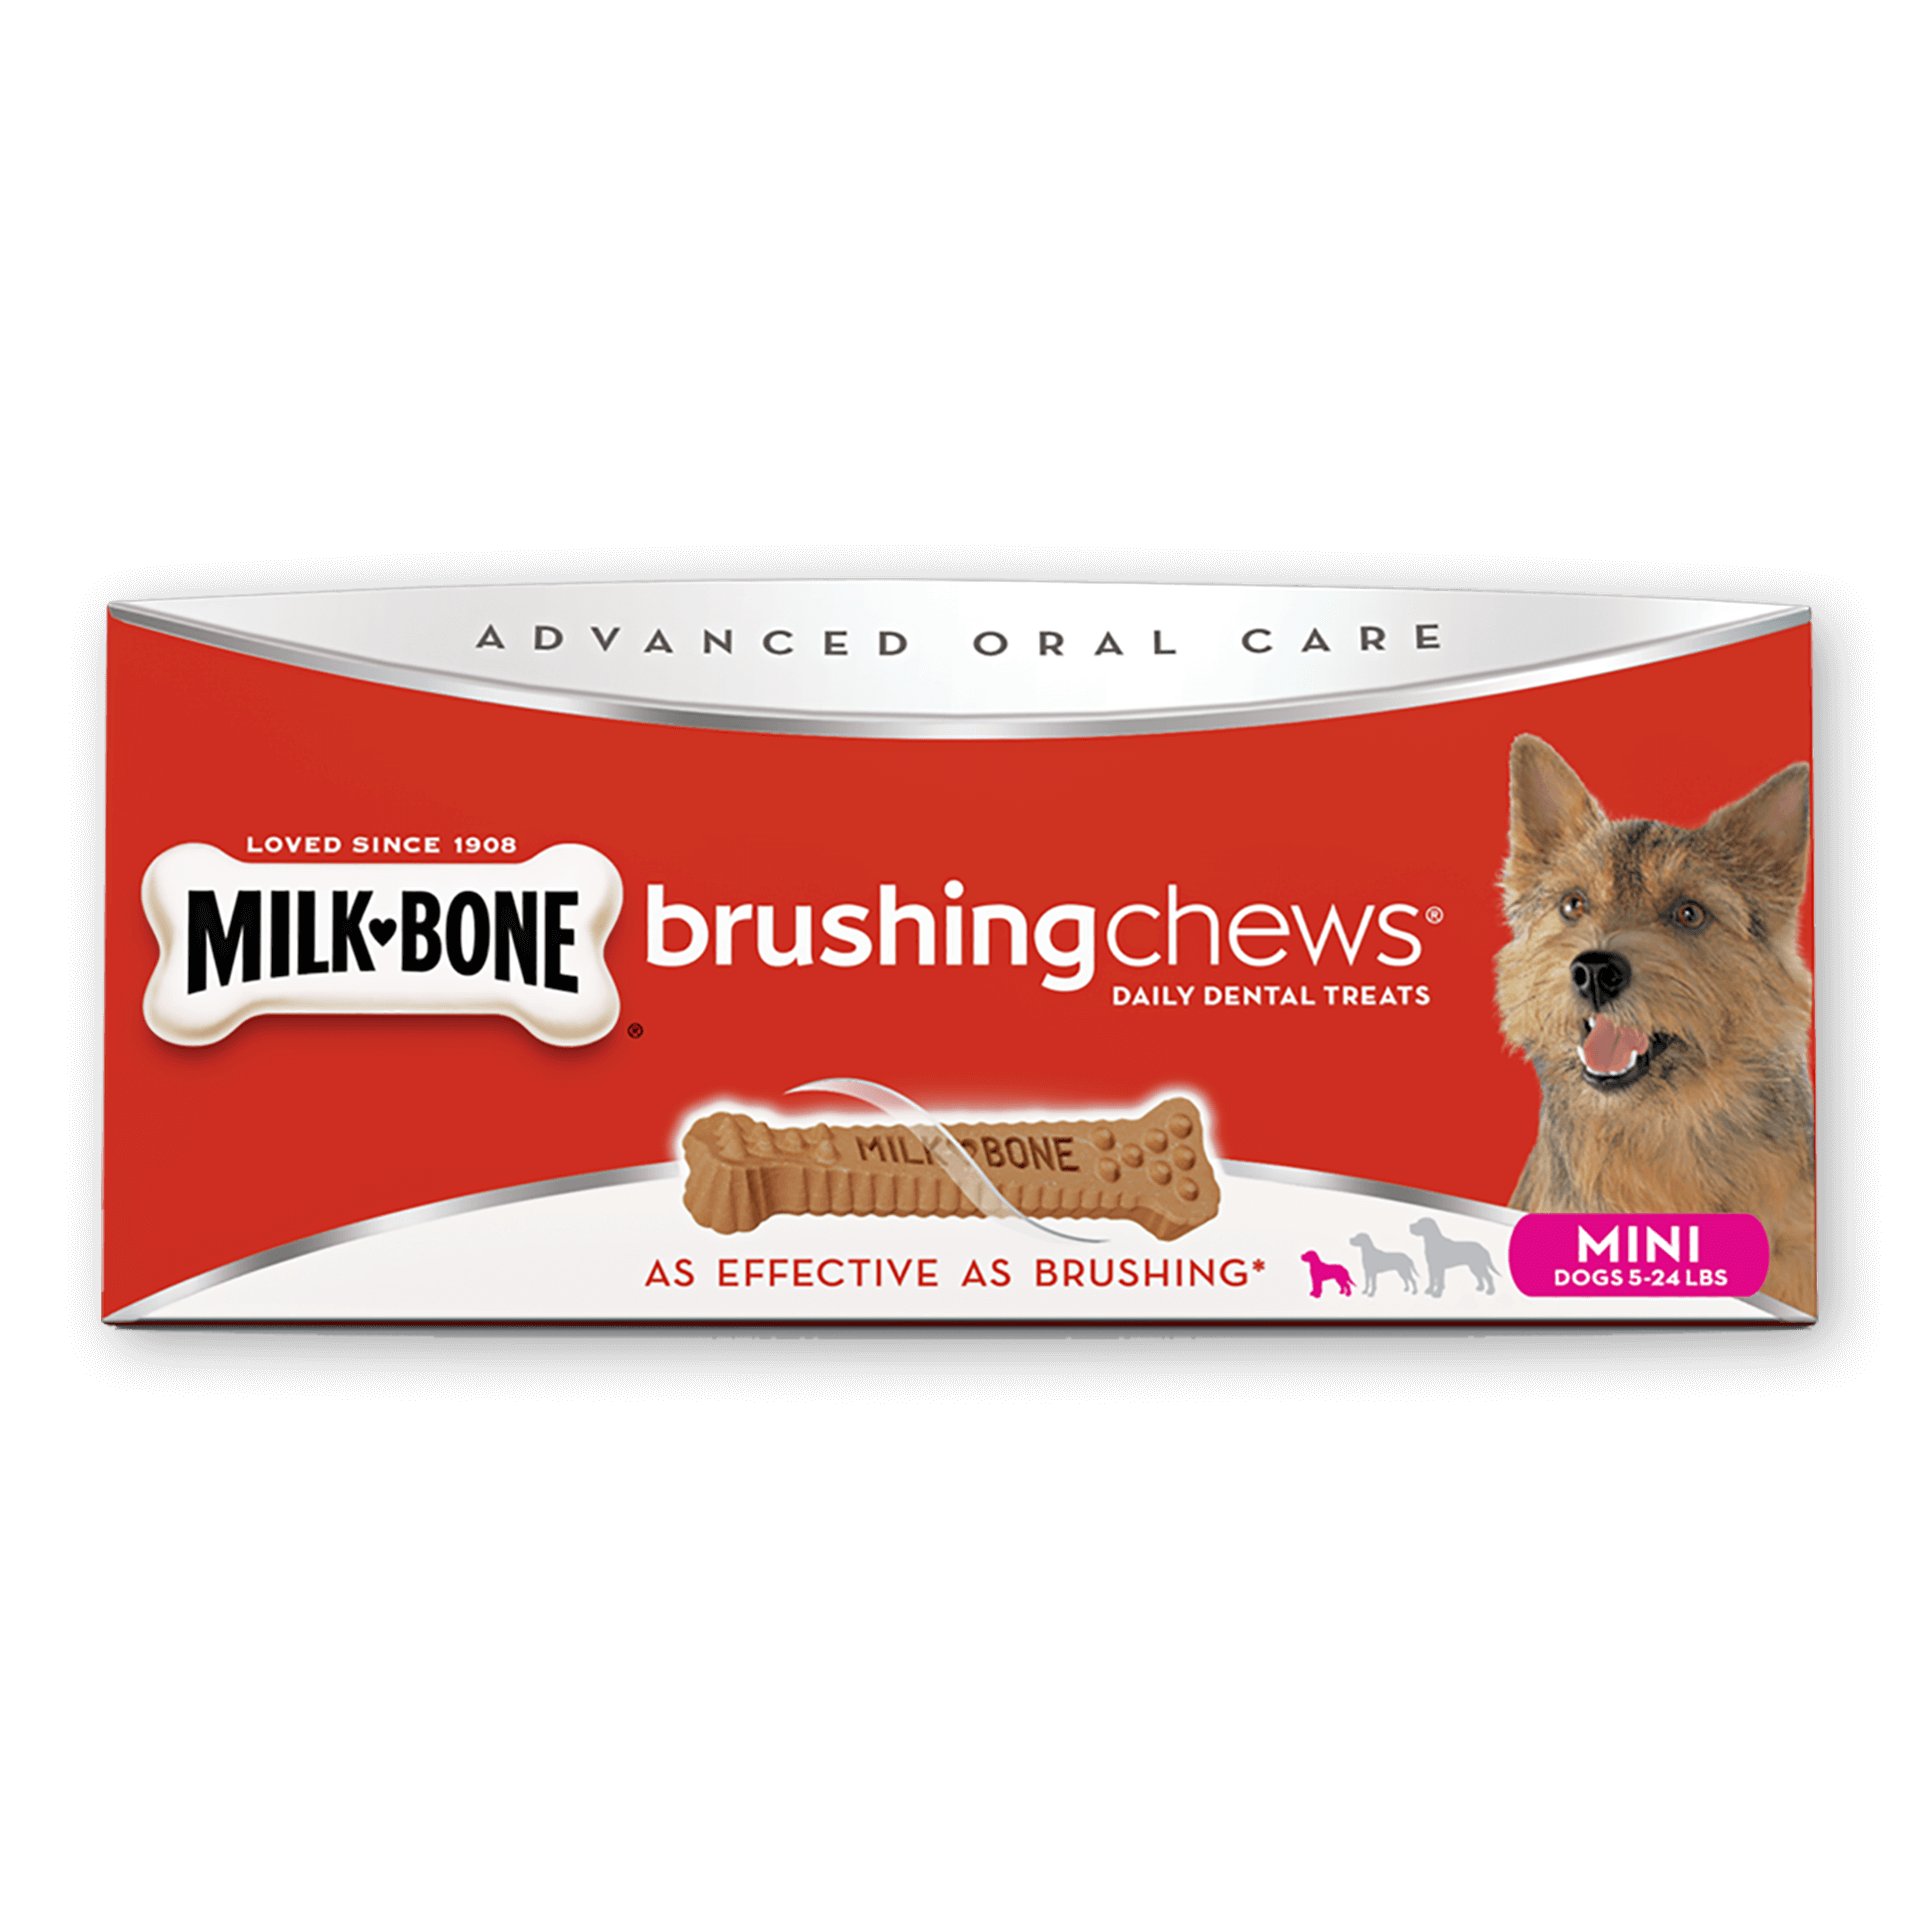 Cat brushing teeth clipart graphic royalty free Brushing Chews®: Dog Dental Treats for Strong Bones | Milk-Bone® graphic royalty free